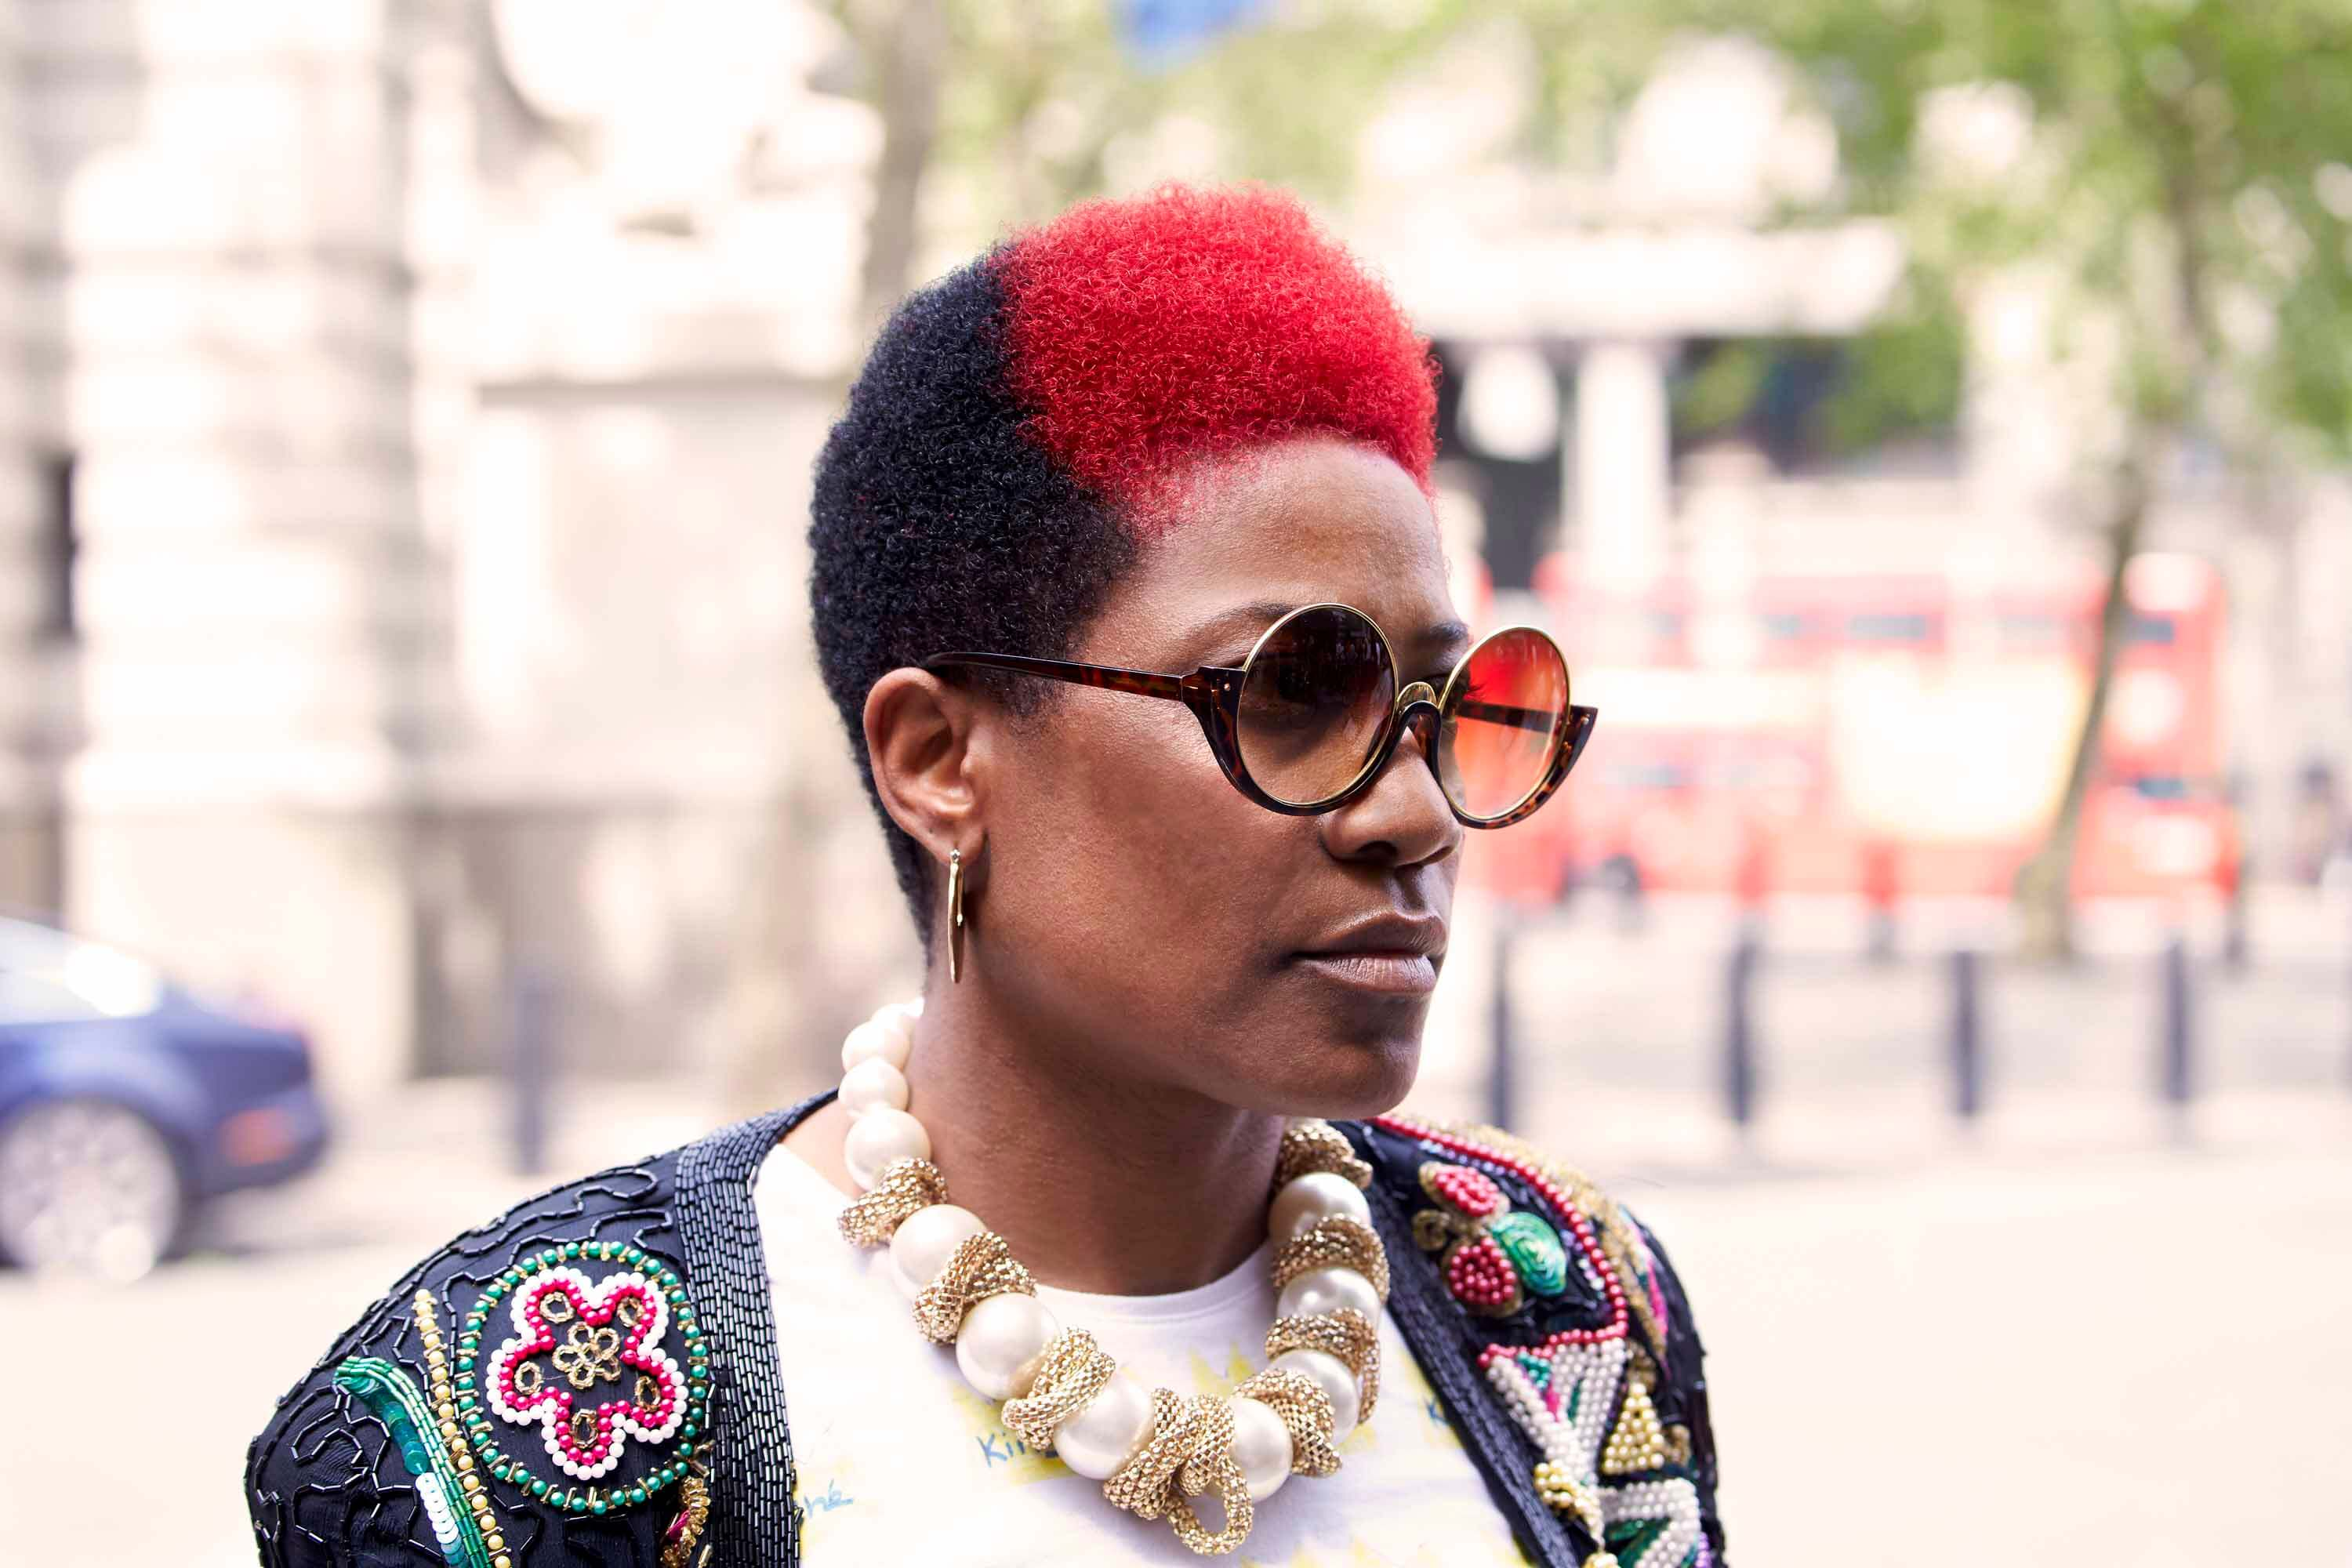 Afro hairstyles: black woman with two toned black and red afro